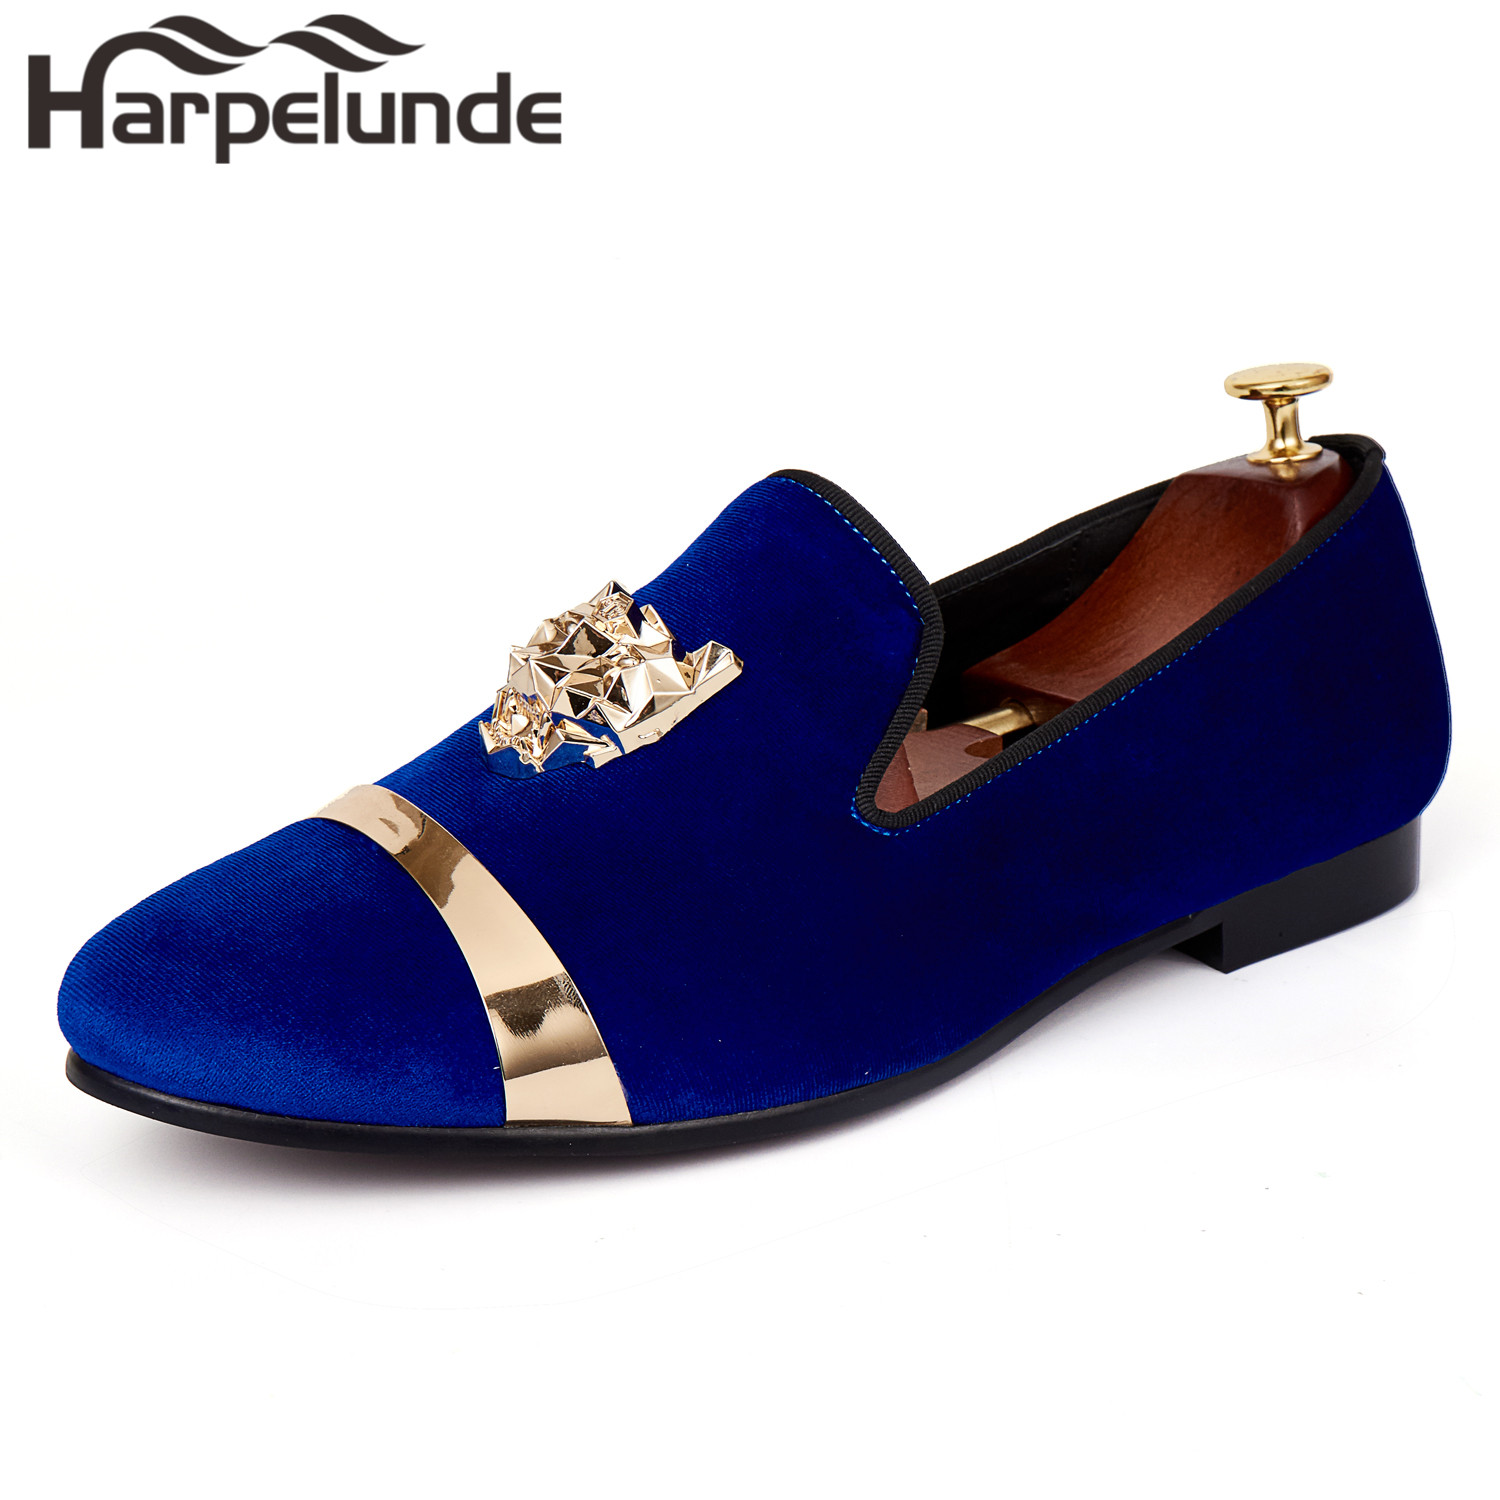 Harpelunde Men Flat Shoes Animal Buckle Blue Velvet Dress Loafers Dengan Plat Emas Ukuran 6-14